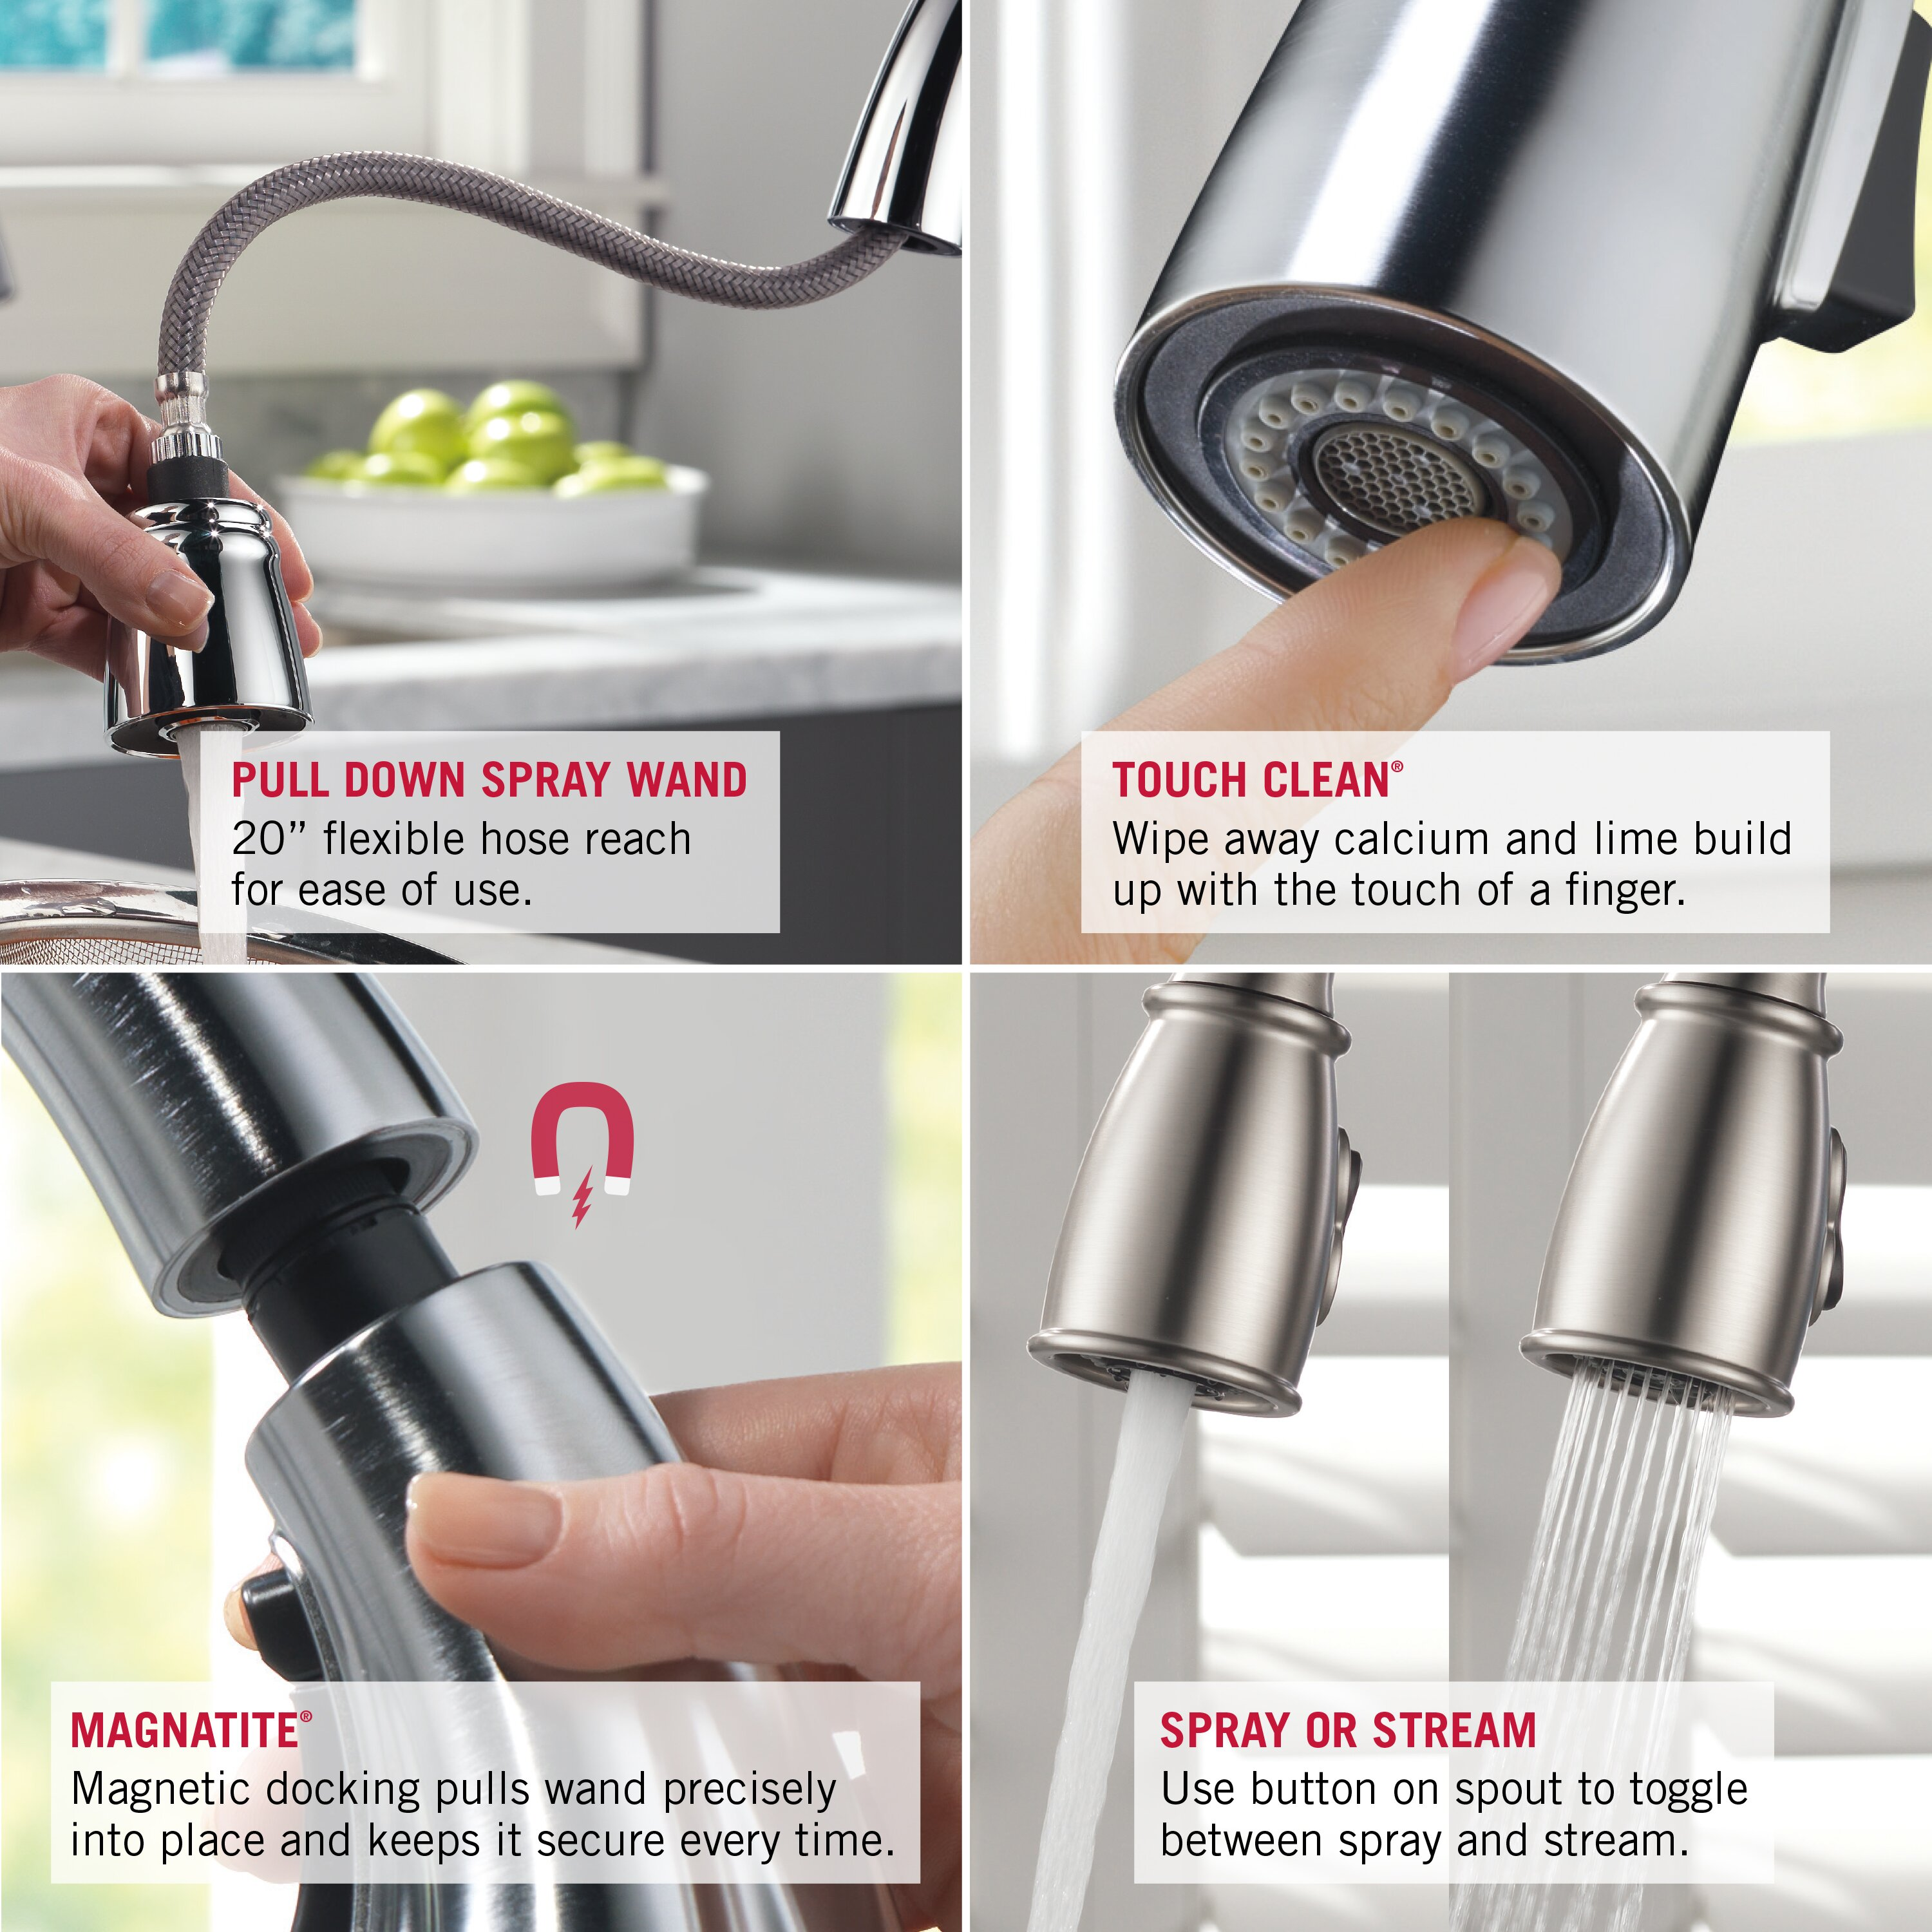 Delta Mateo E2 84 A2 Single Handle Deck Mounted Kitchen Faucet DLT delta linden kitchen faucet Delta Mateo trade Single Handle Deck Mounted Kitchen Faucet